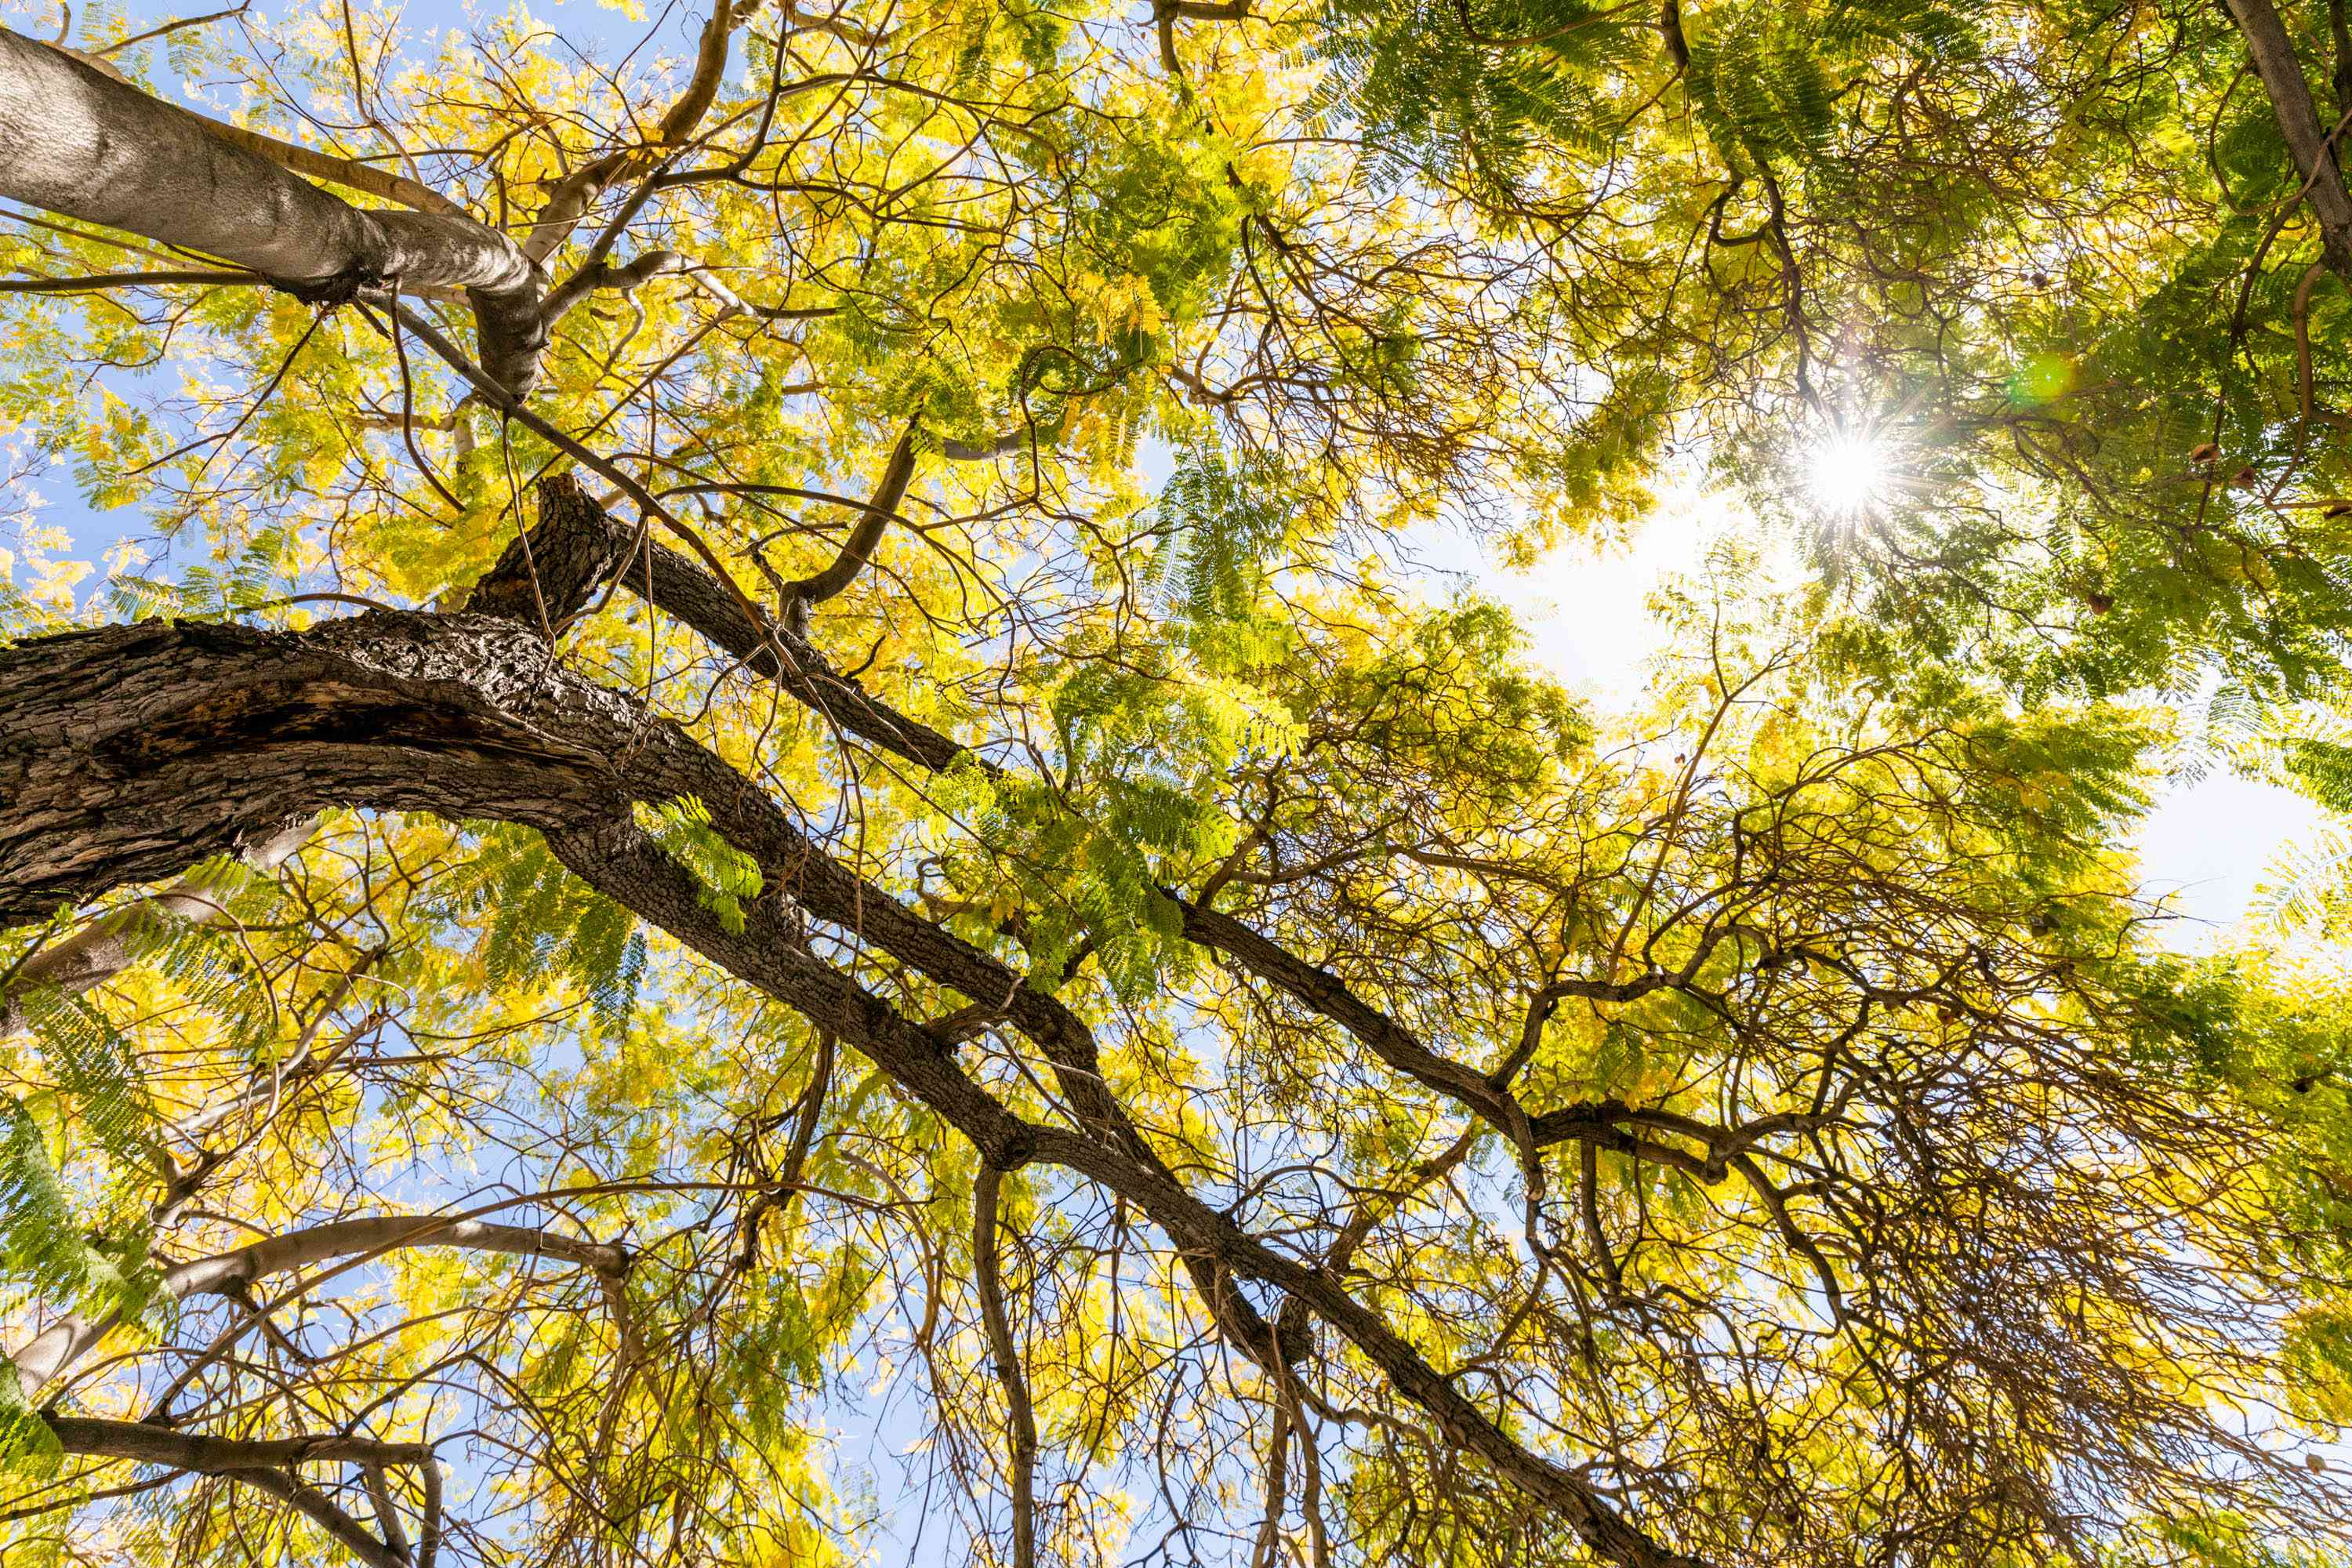 Jacaranda tree branches from below with green and yellow leaves